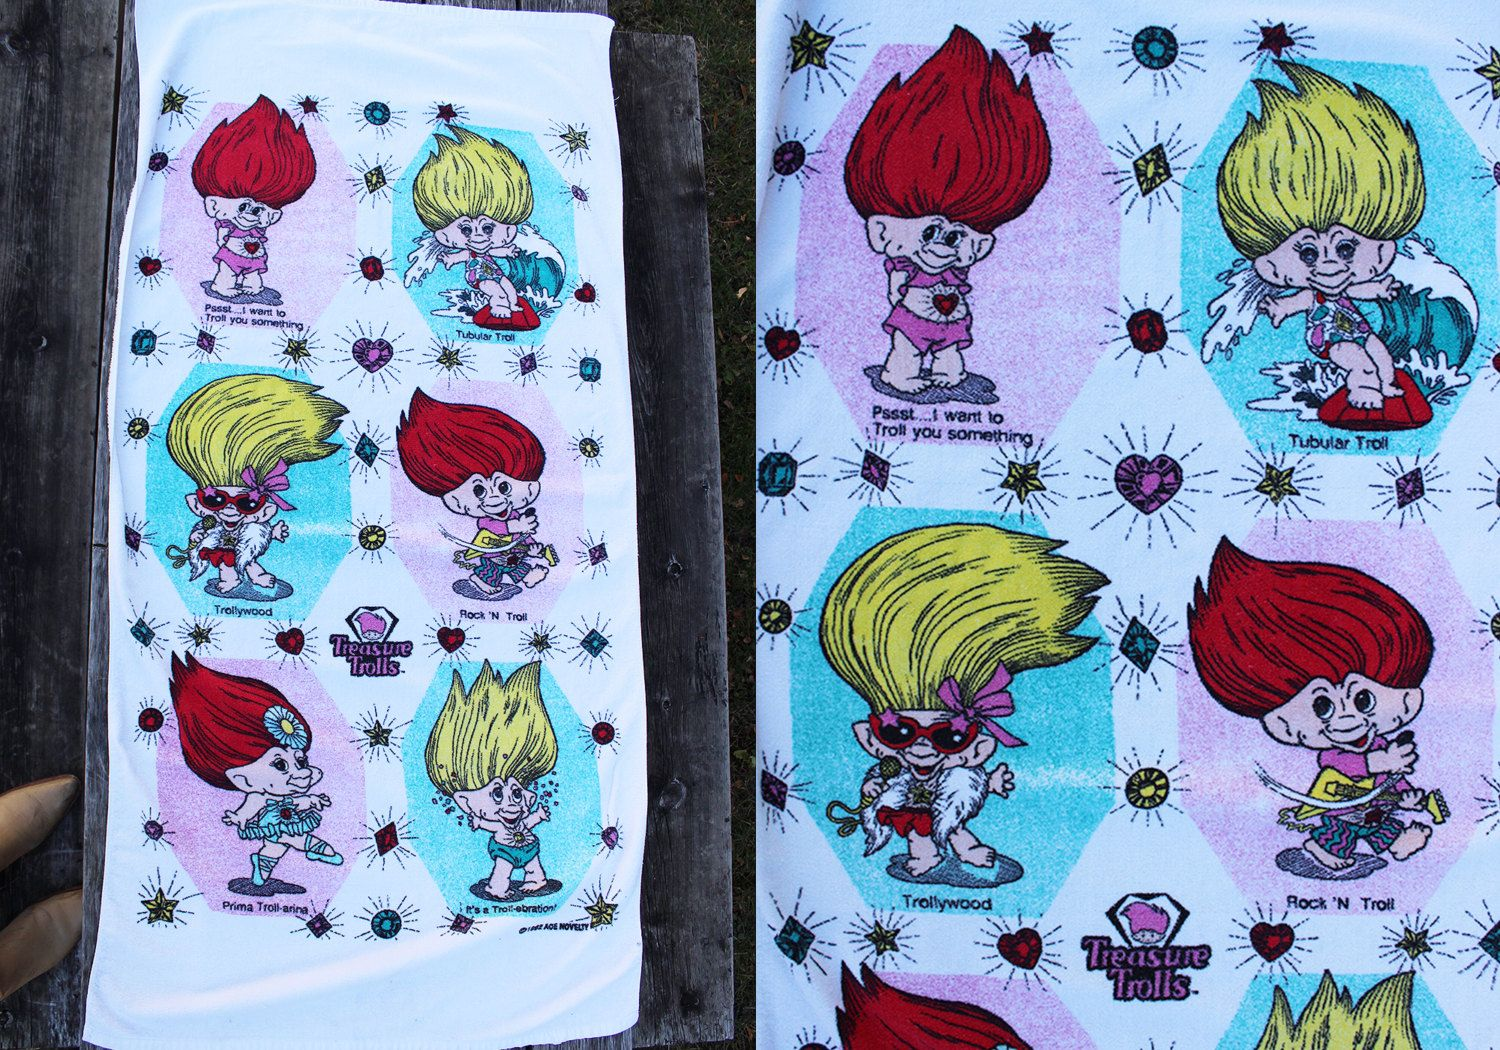 Vintage Vtg Vg 1990's TOTALLY Tubular Treasure Trolls Beach Towel Hipster Kitsch Funny Bling Retro Rock N' Troll Towel Accessory Novelty by foxandfawns on Etsy